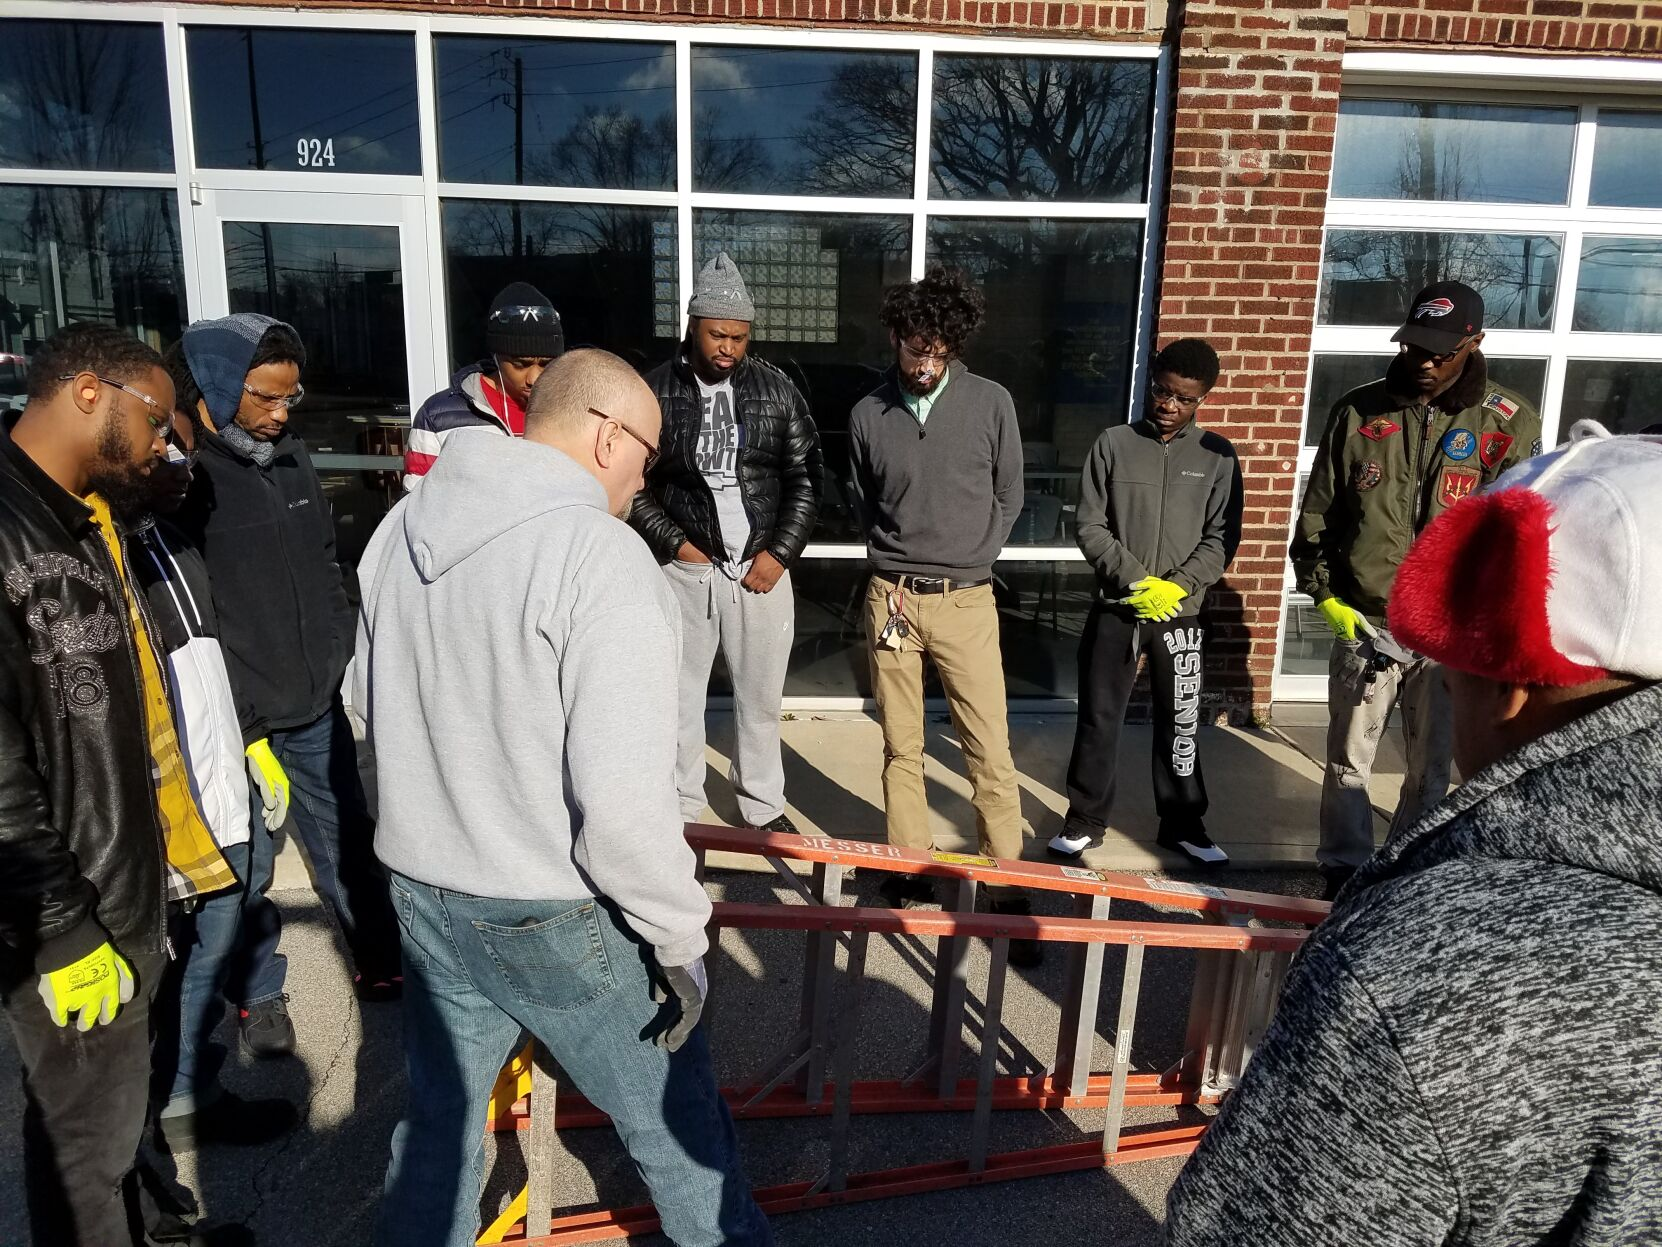 The Indiana Construction Roundtable Foundation (ICRF) will offer construction training for a new program, Build Your NW. ICRF has offered previous construction training programs for local residents. (Photo provided)